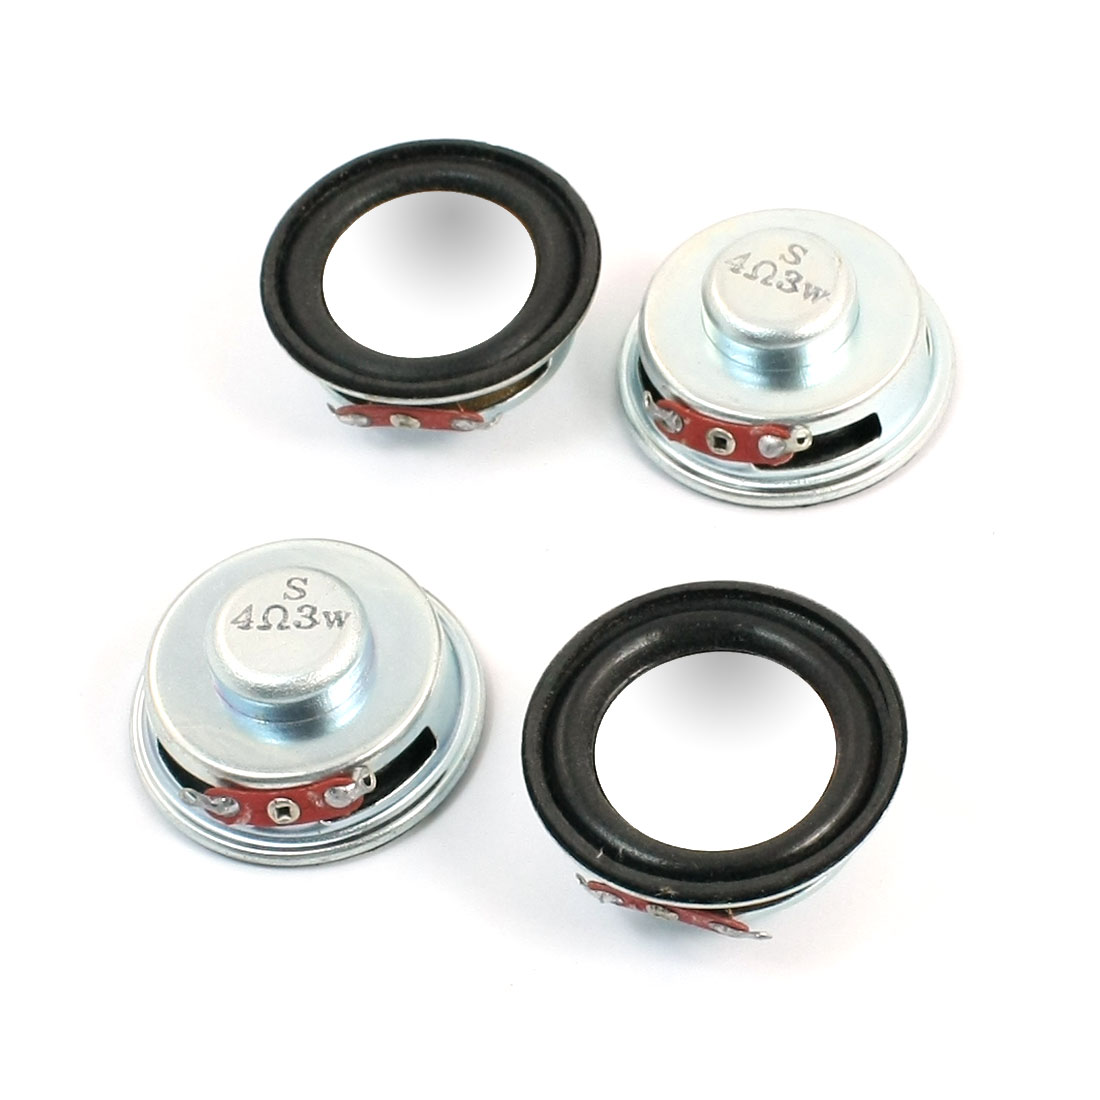 4Pcs 40mm Dia Round Aluminum Shell Internal Magnet Type Electronic Toy Audio Speaker Amplifier Loundspeaker 3W 4 Ohm